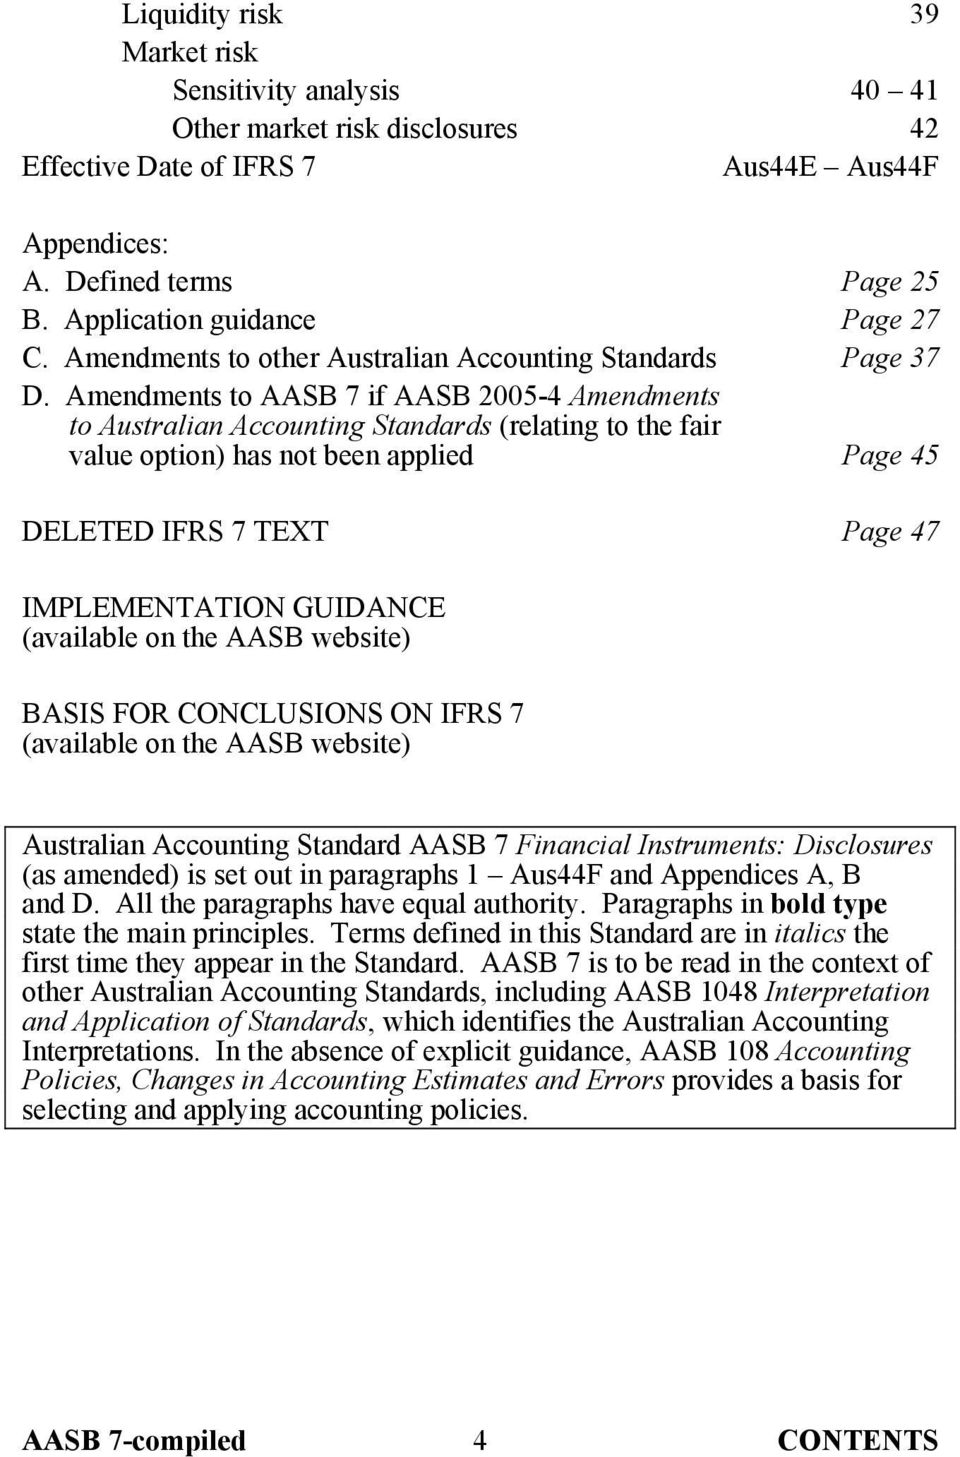 Amendments to AASB 7 if AASB 2005-4 Amendments to Australian Accounting Standards (relating to the fair value option) has not been applied Page 45 DELETED IFRS 7 TEXT Page 47 IMPLEMENTATION GUIDANCE